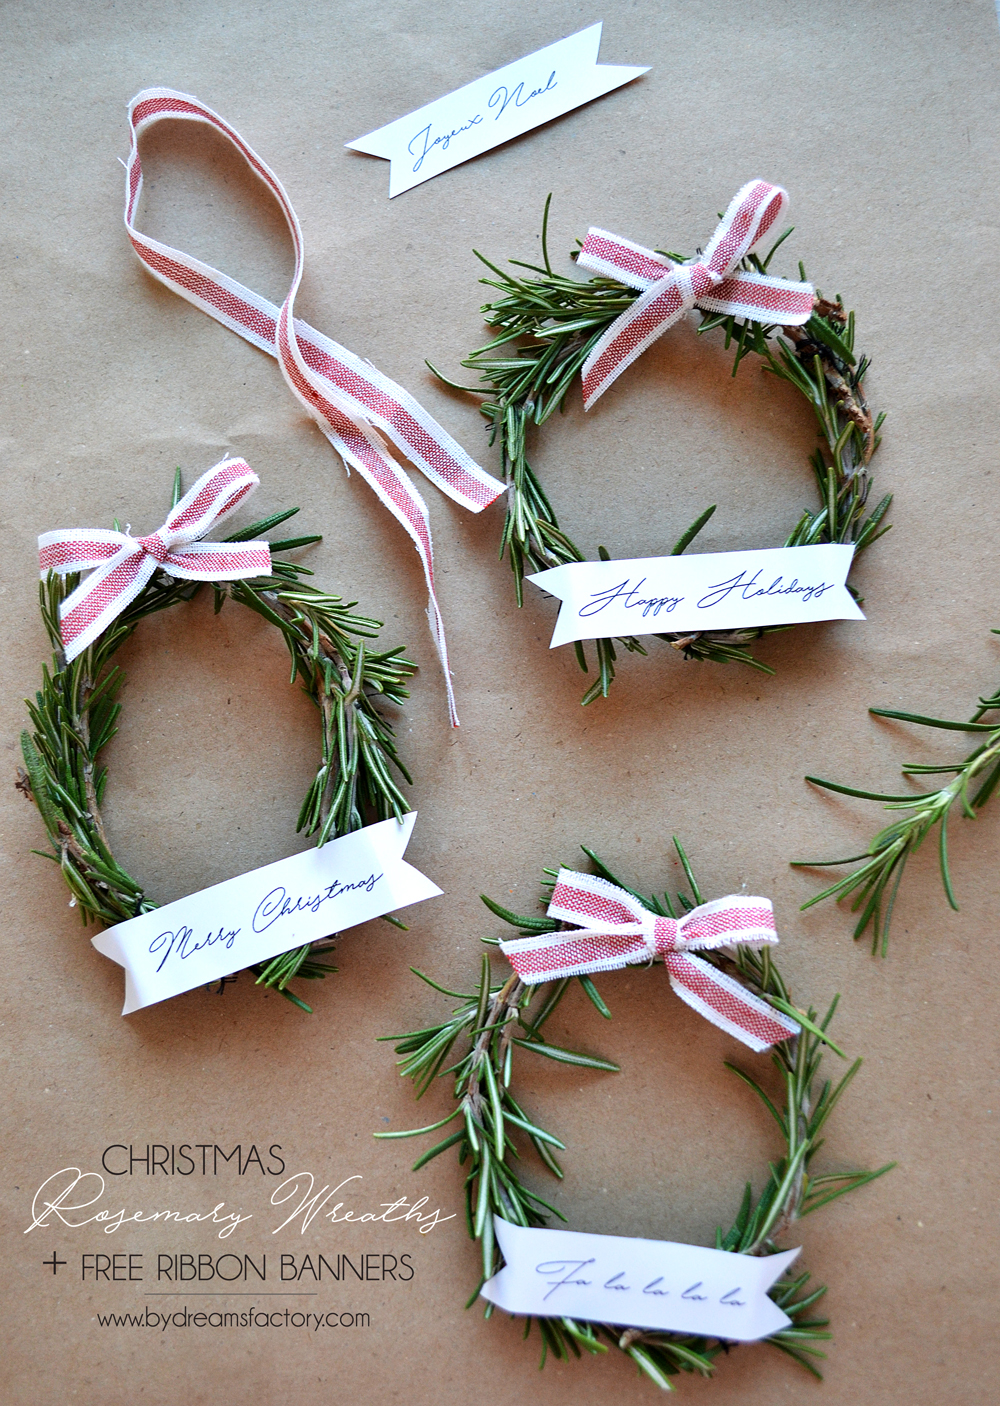 Mini-Rosemary-Wreaths-free-ribbon-banners-for-Christmas-42-1